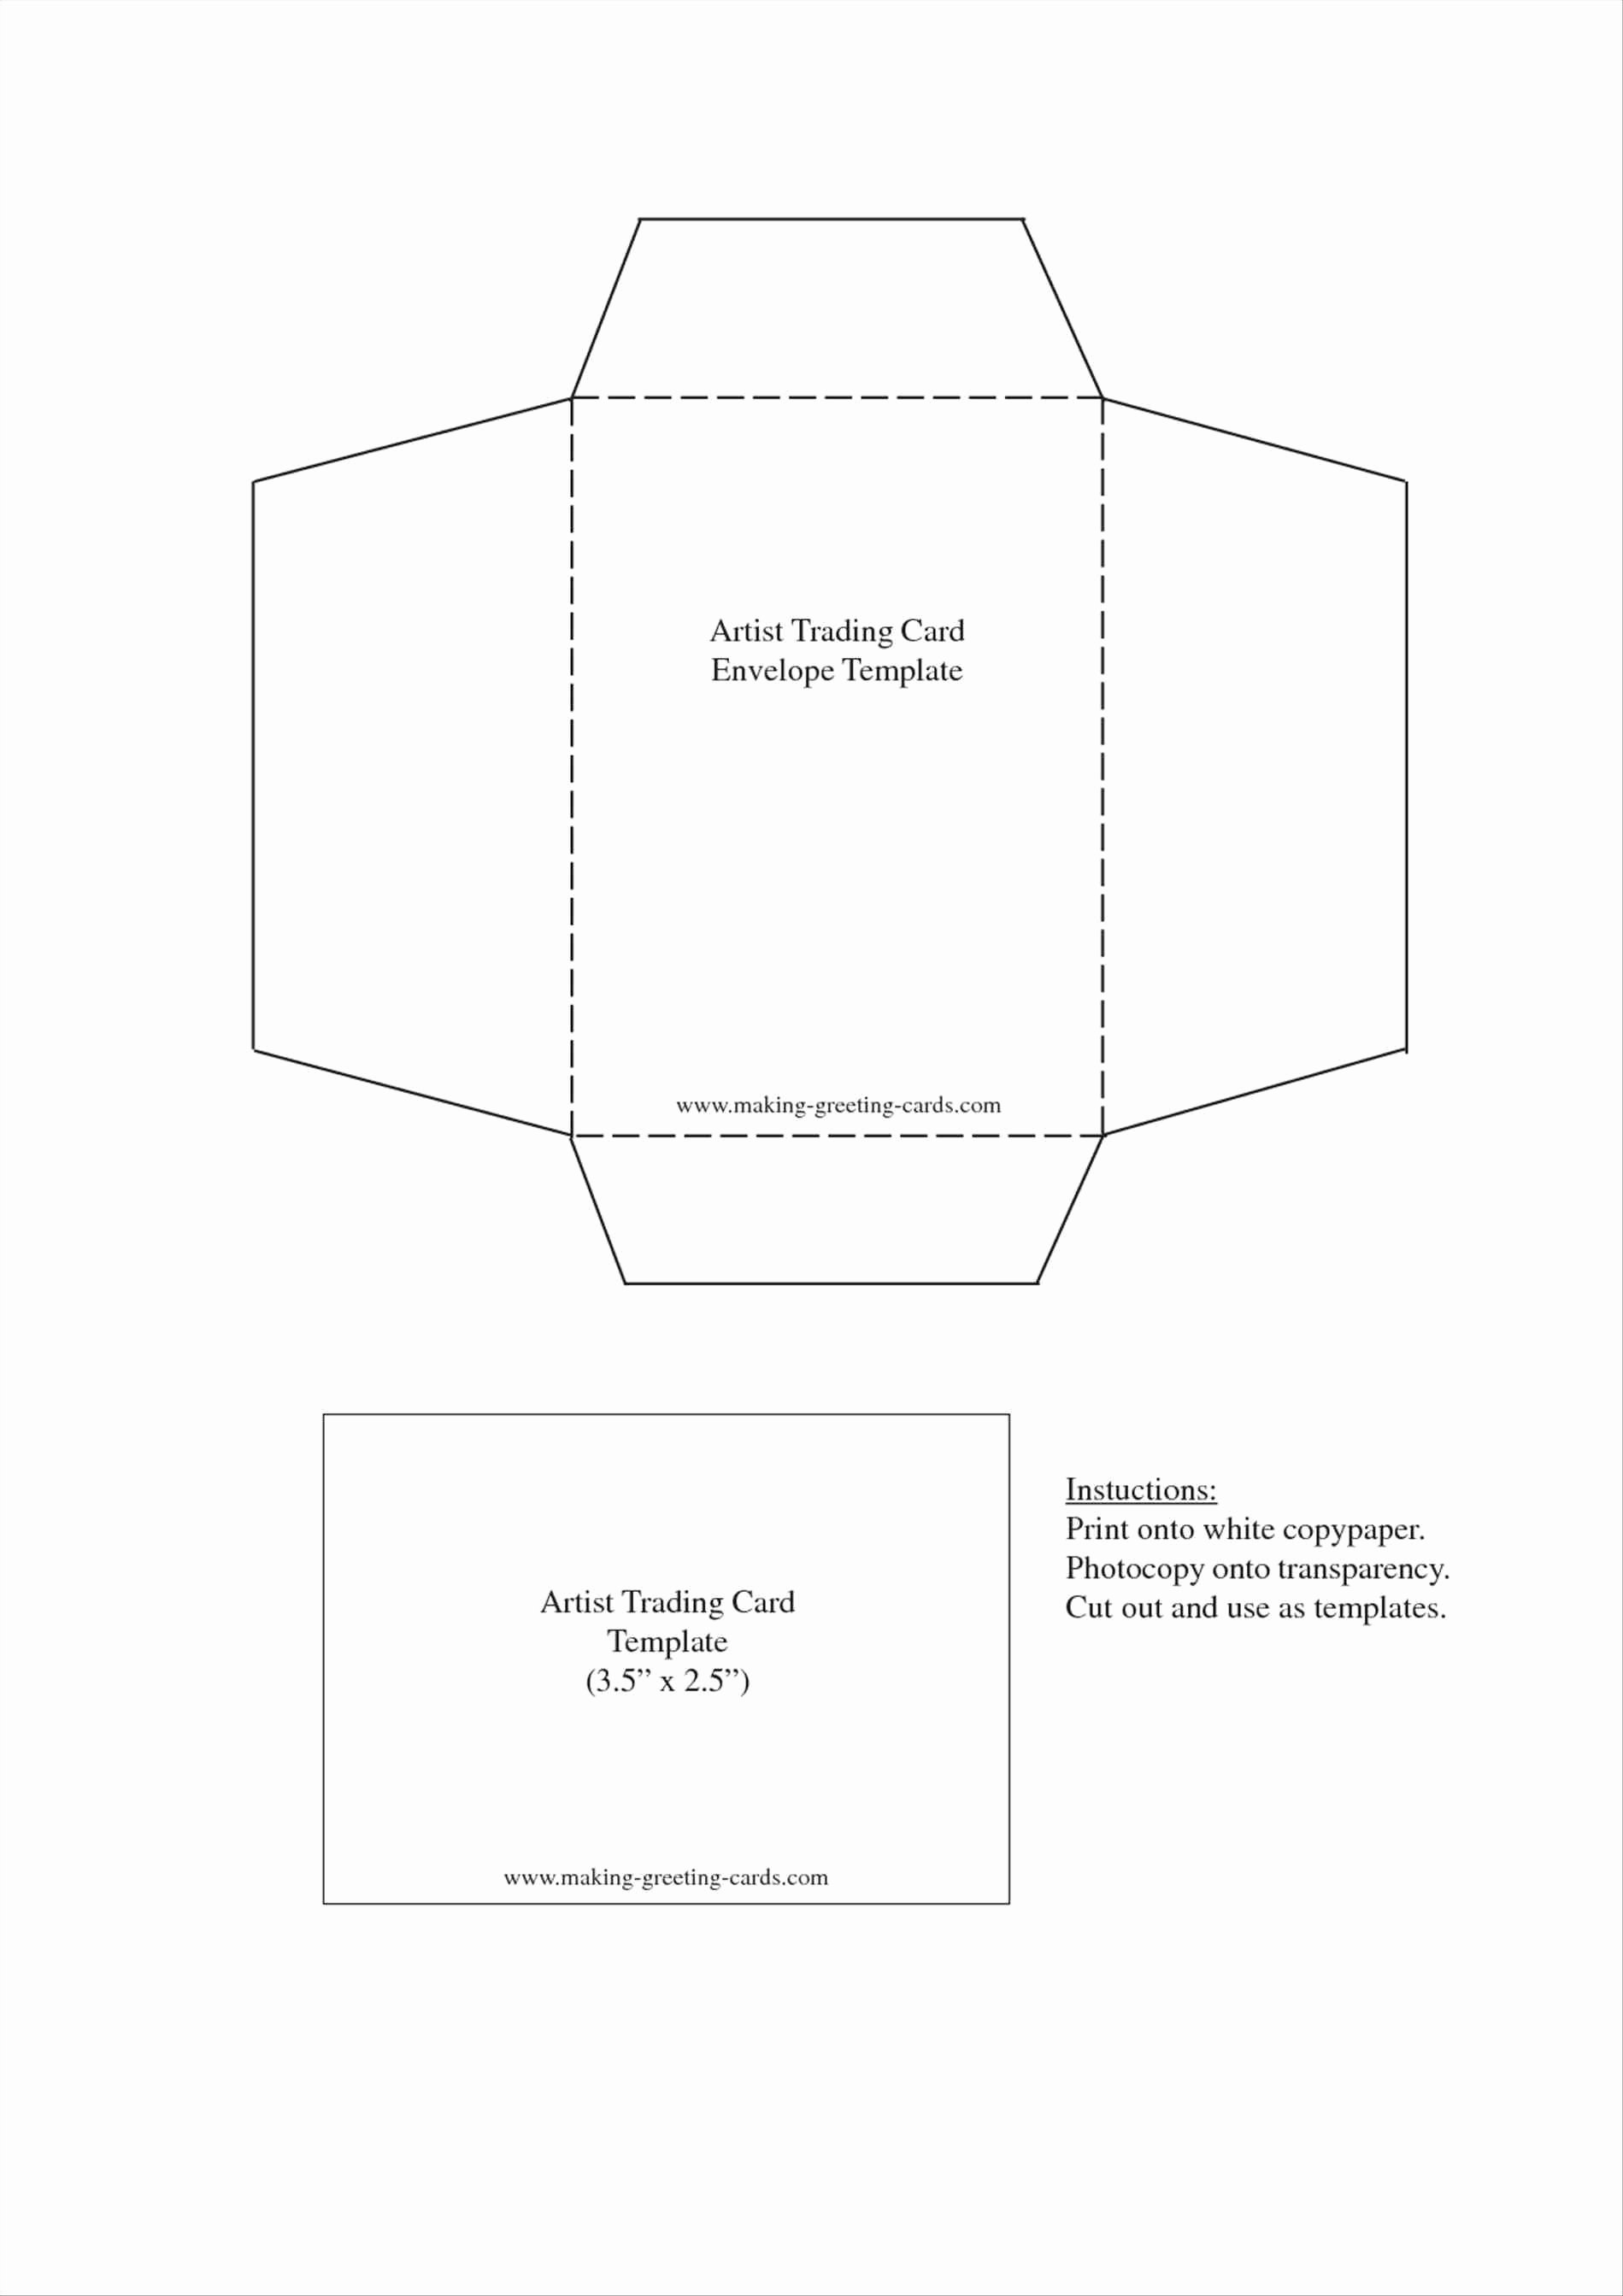 A7 Envelope Template Word Inspirational Envelope Templates Sampletemplatez Sampletemplatez